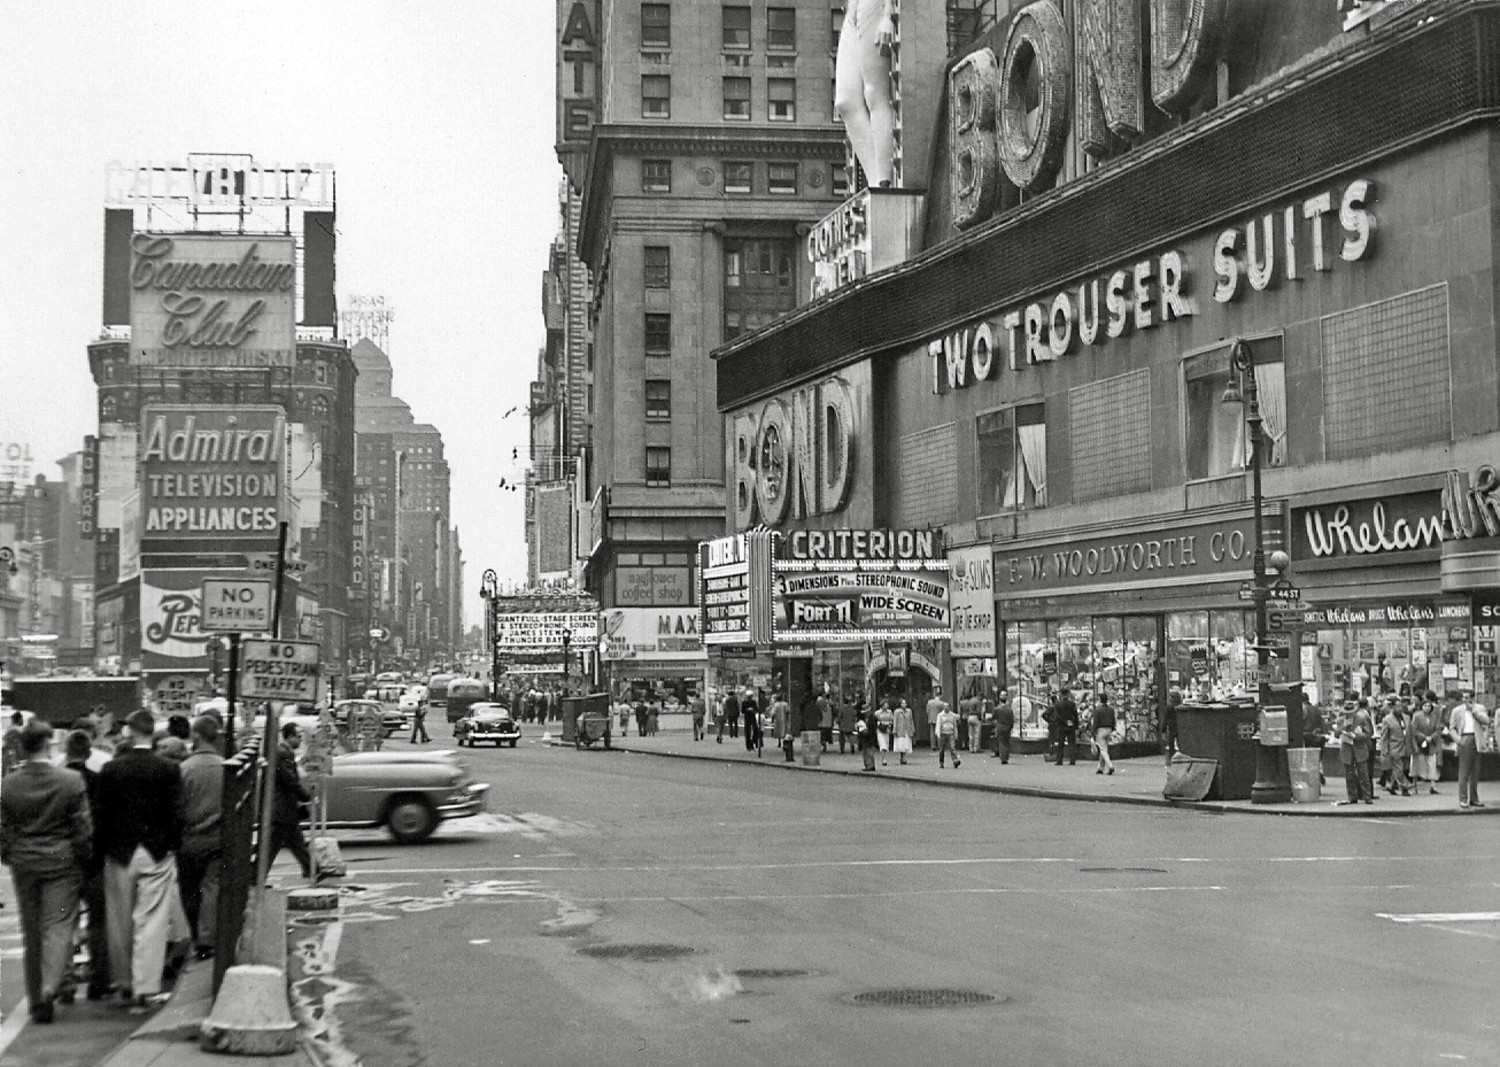 3-D on Times Square, May 30, 1953